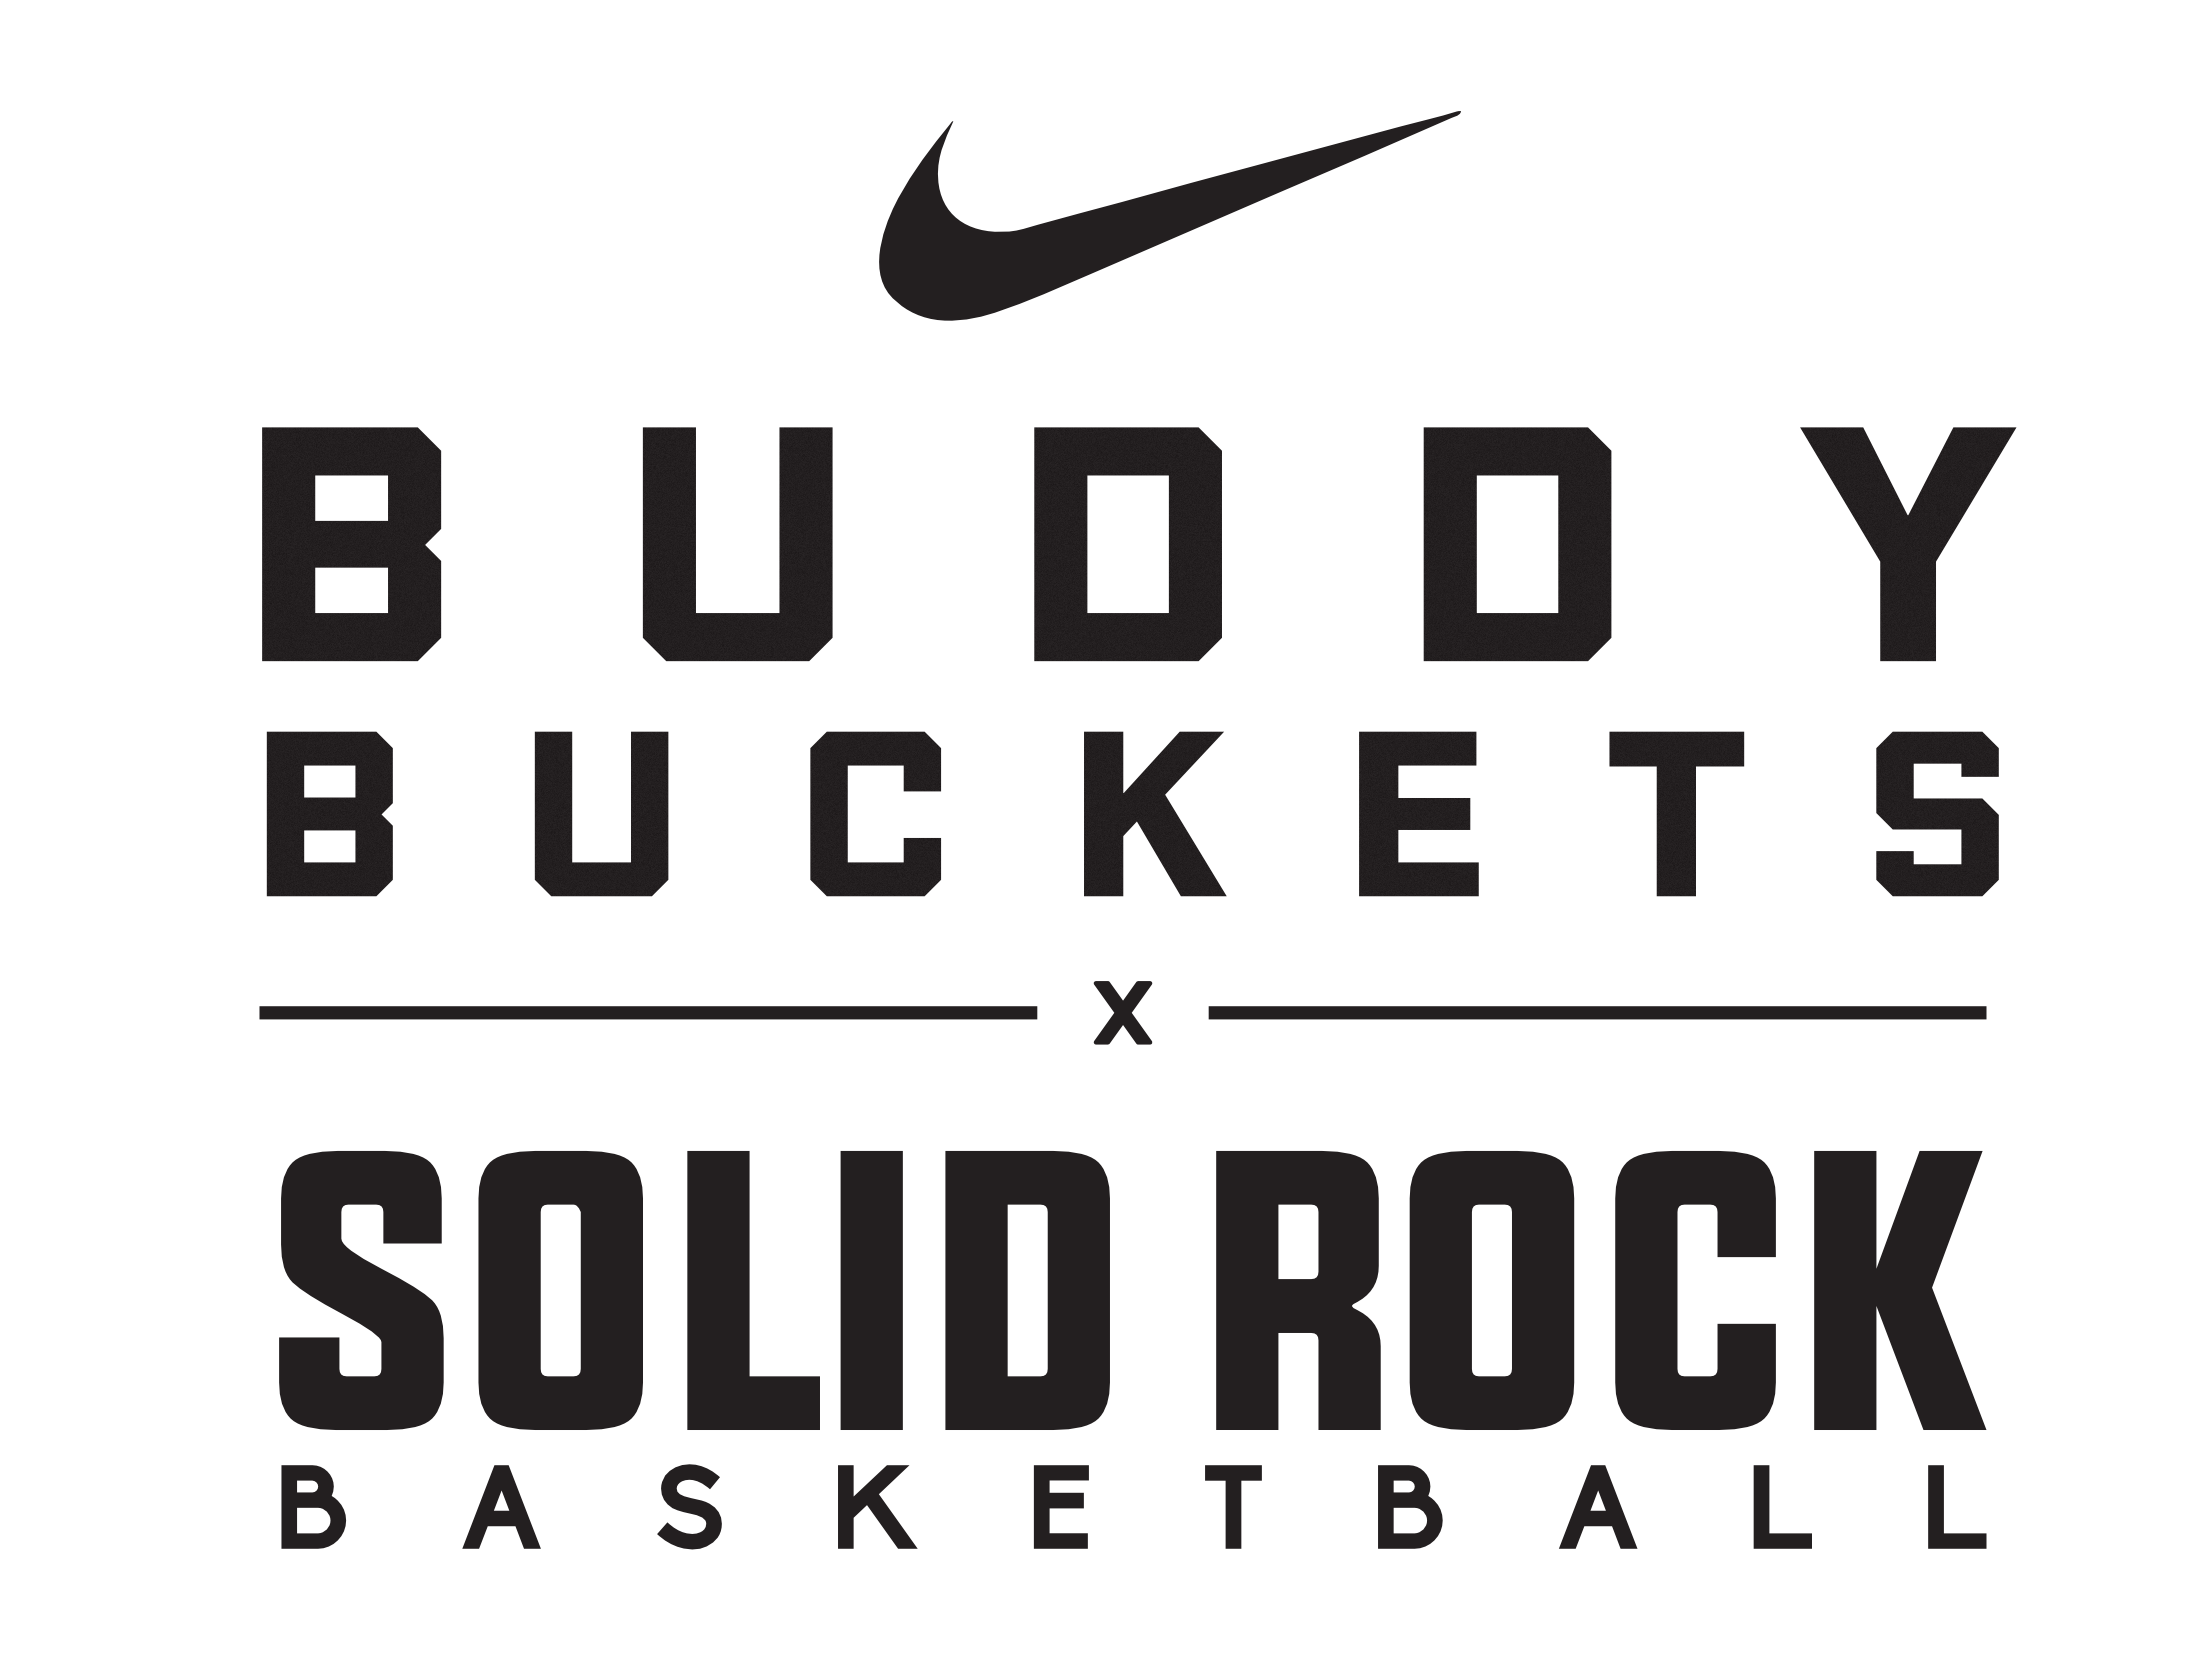 buddy buckets and solid rock combo logo